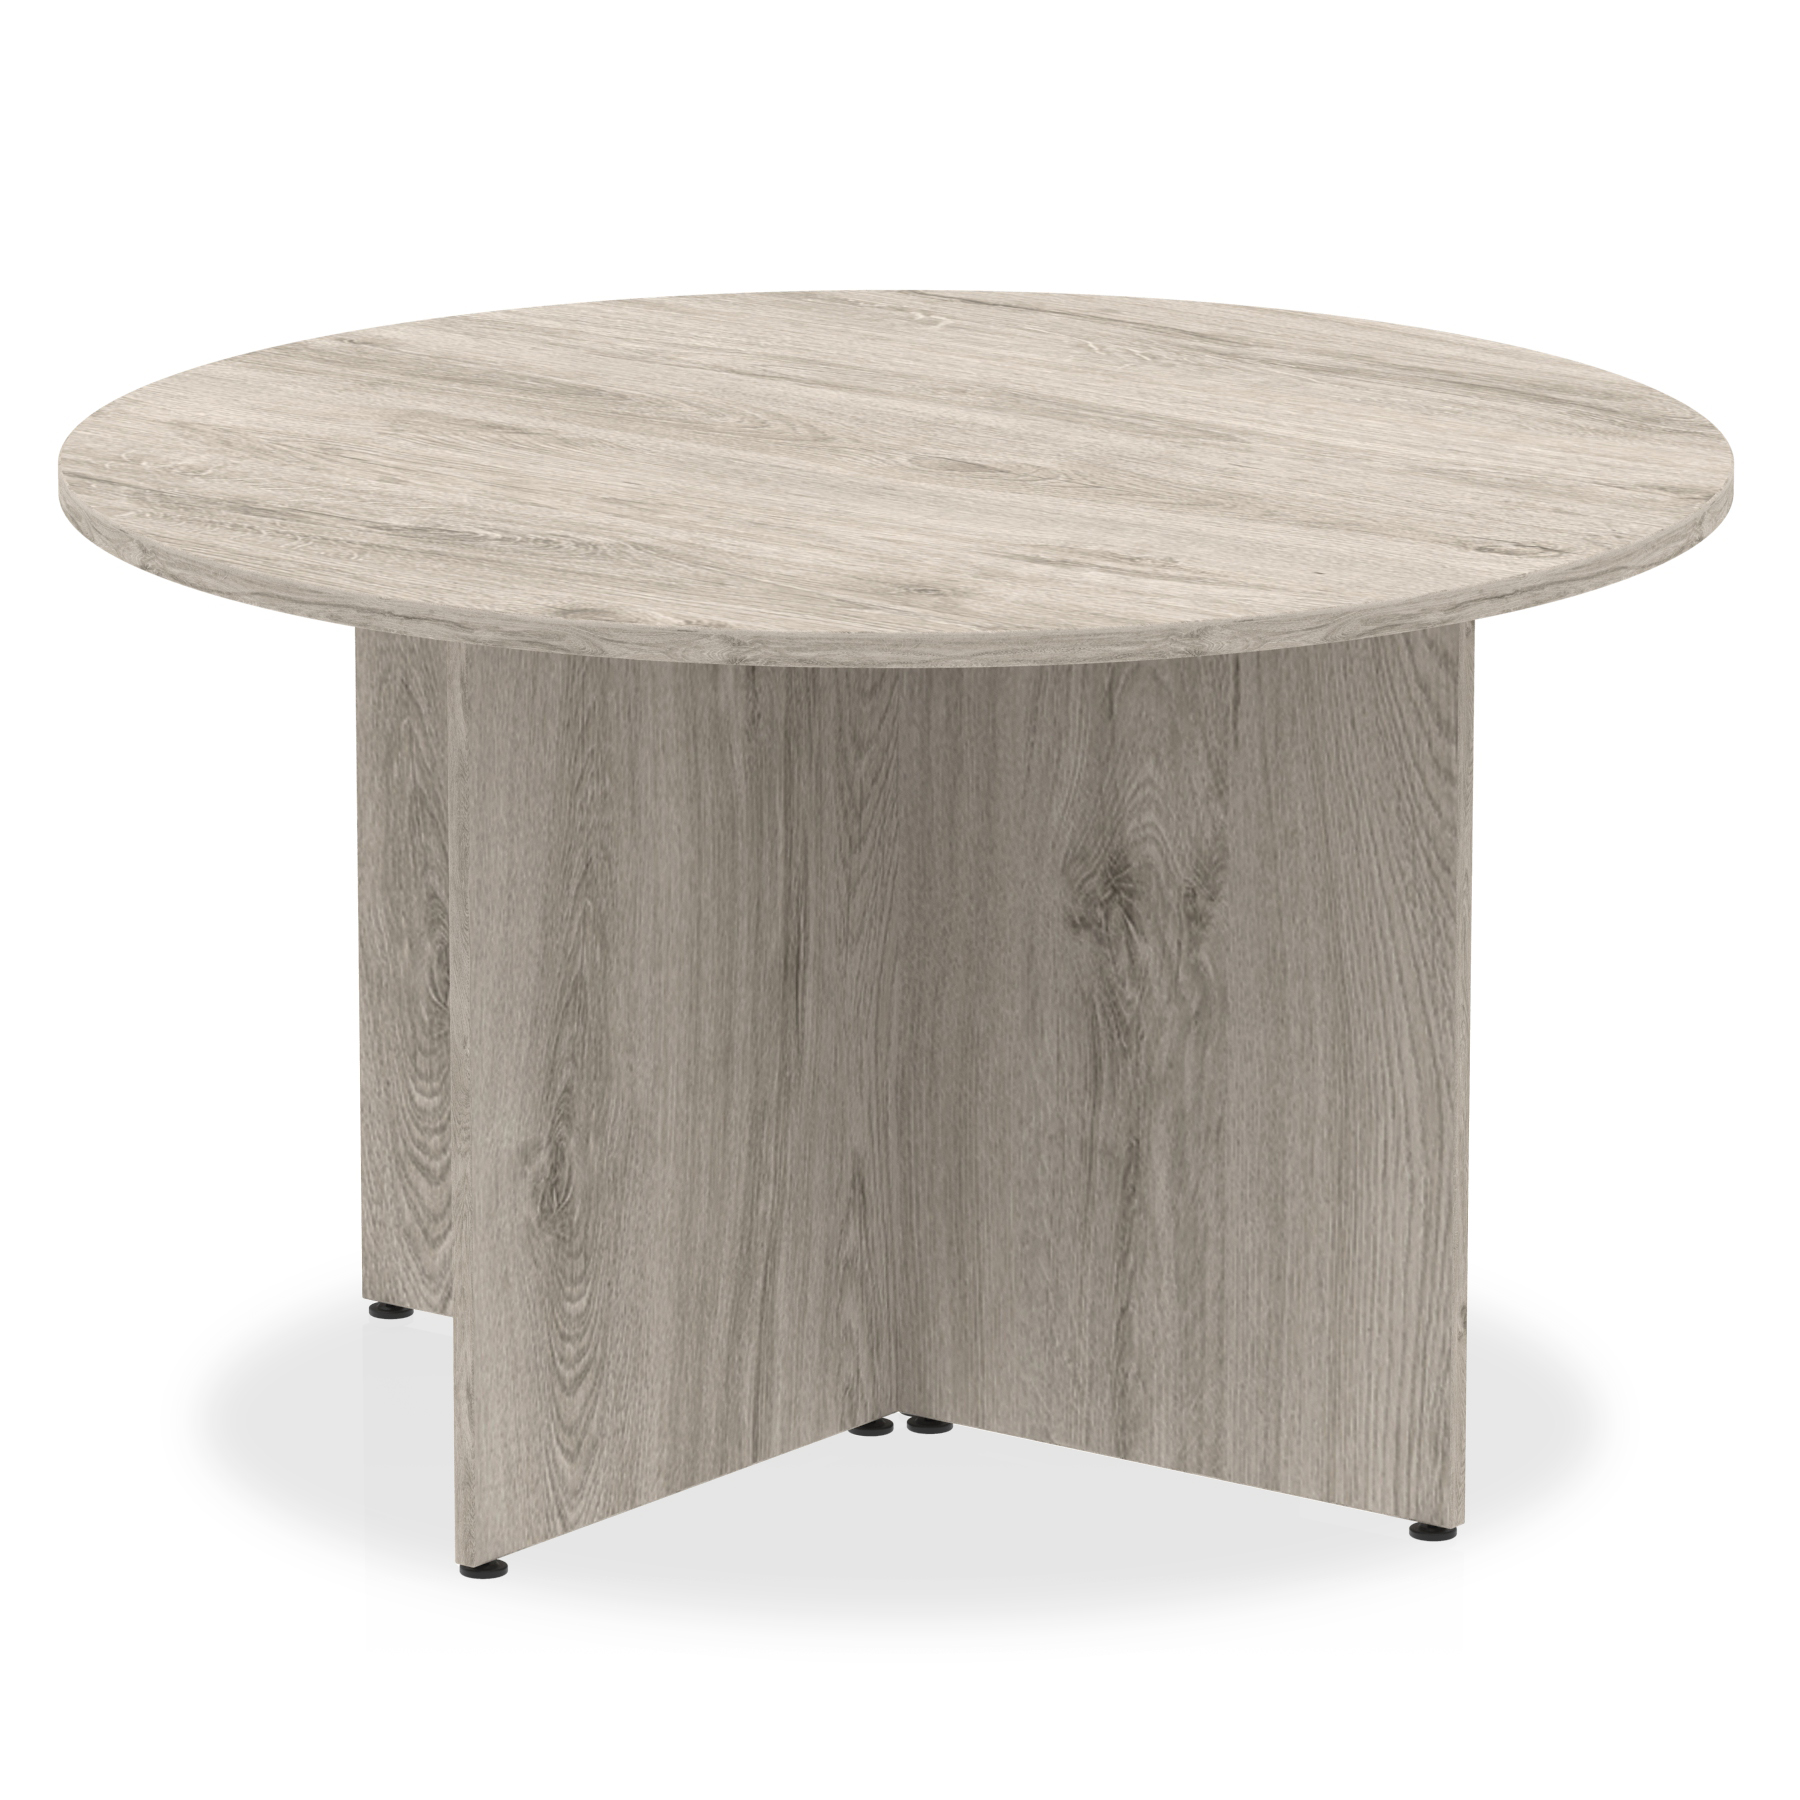 Tables Trexus Circular Table Arrowhead 1200x1200x730mm Grey Oak